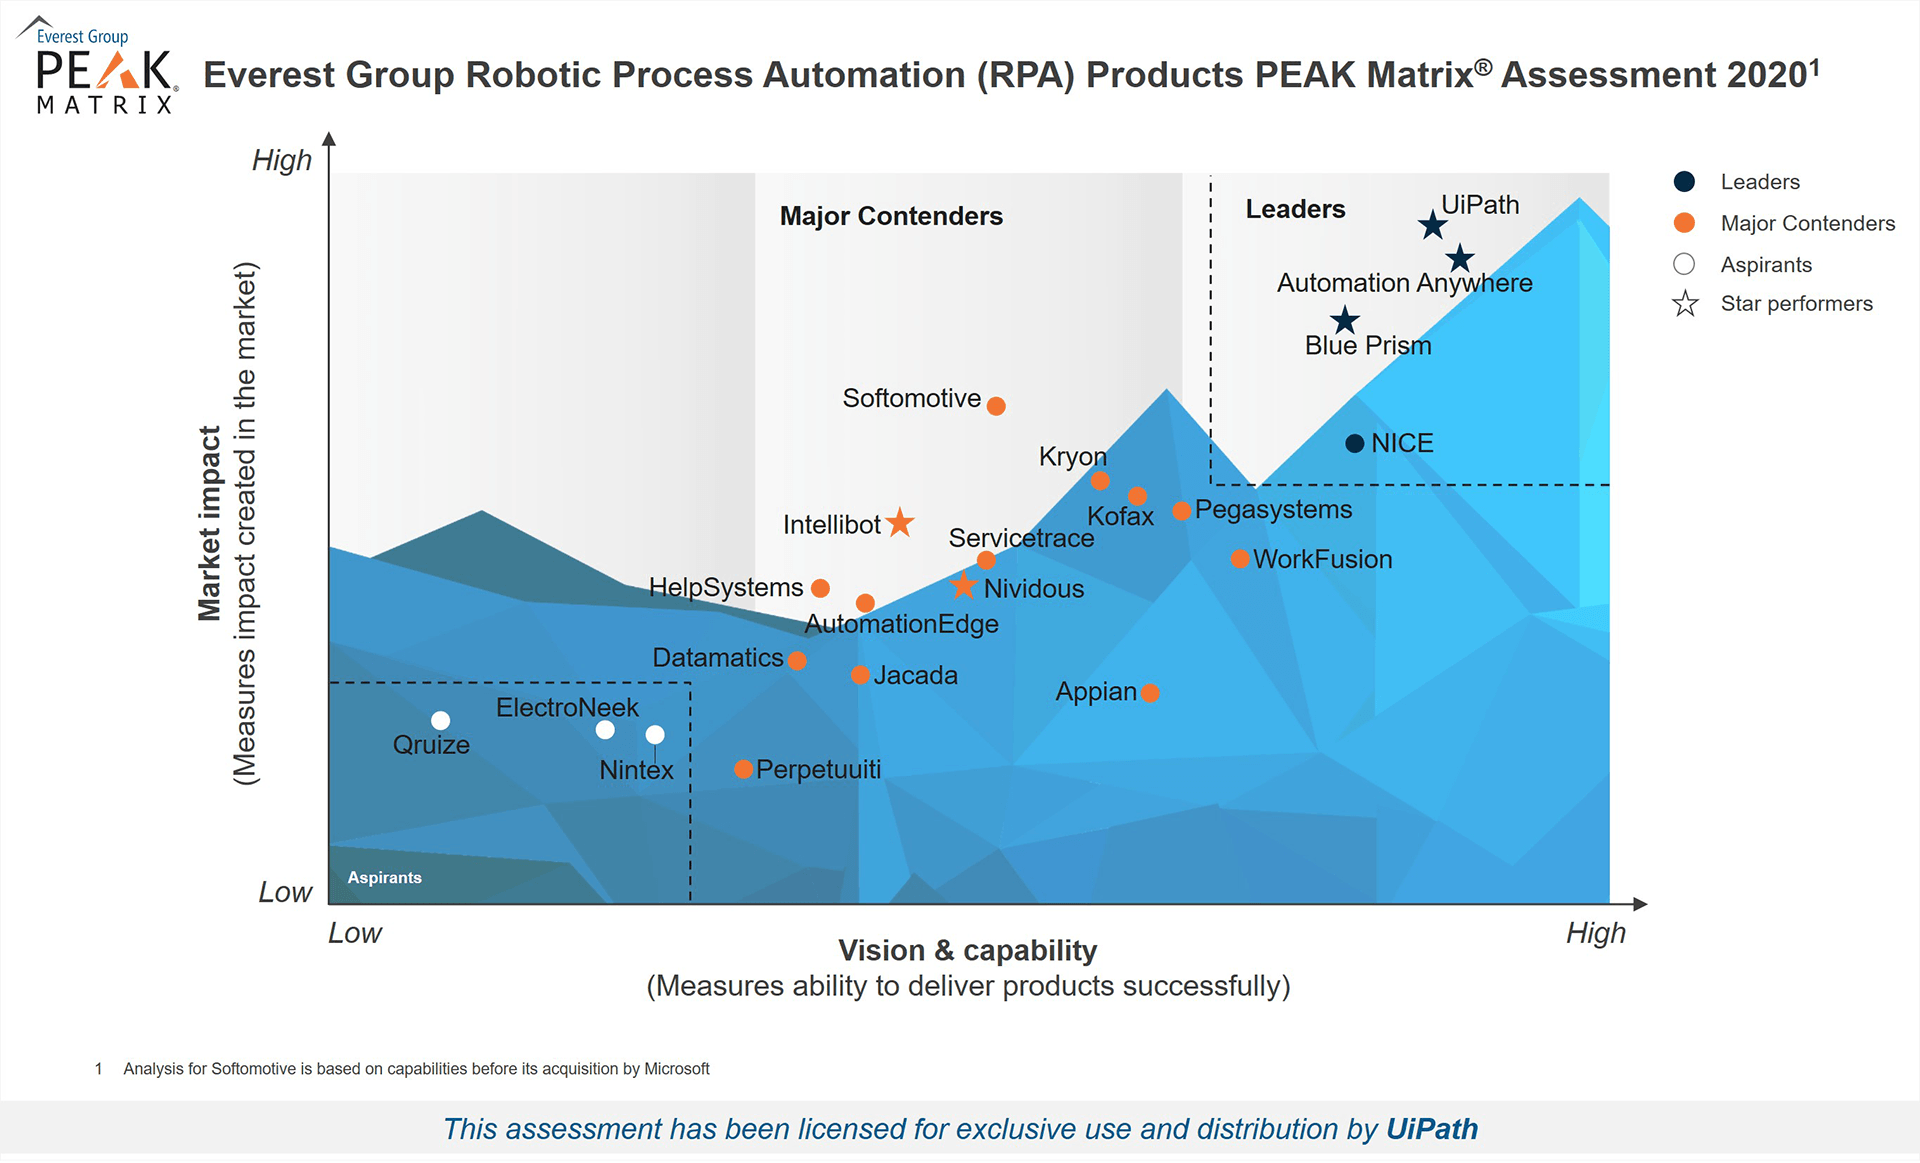 Everest Group - RPA PEAK Matrix Assessment - Licensed for UiPath